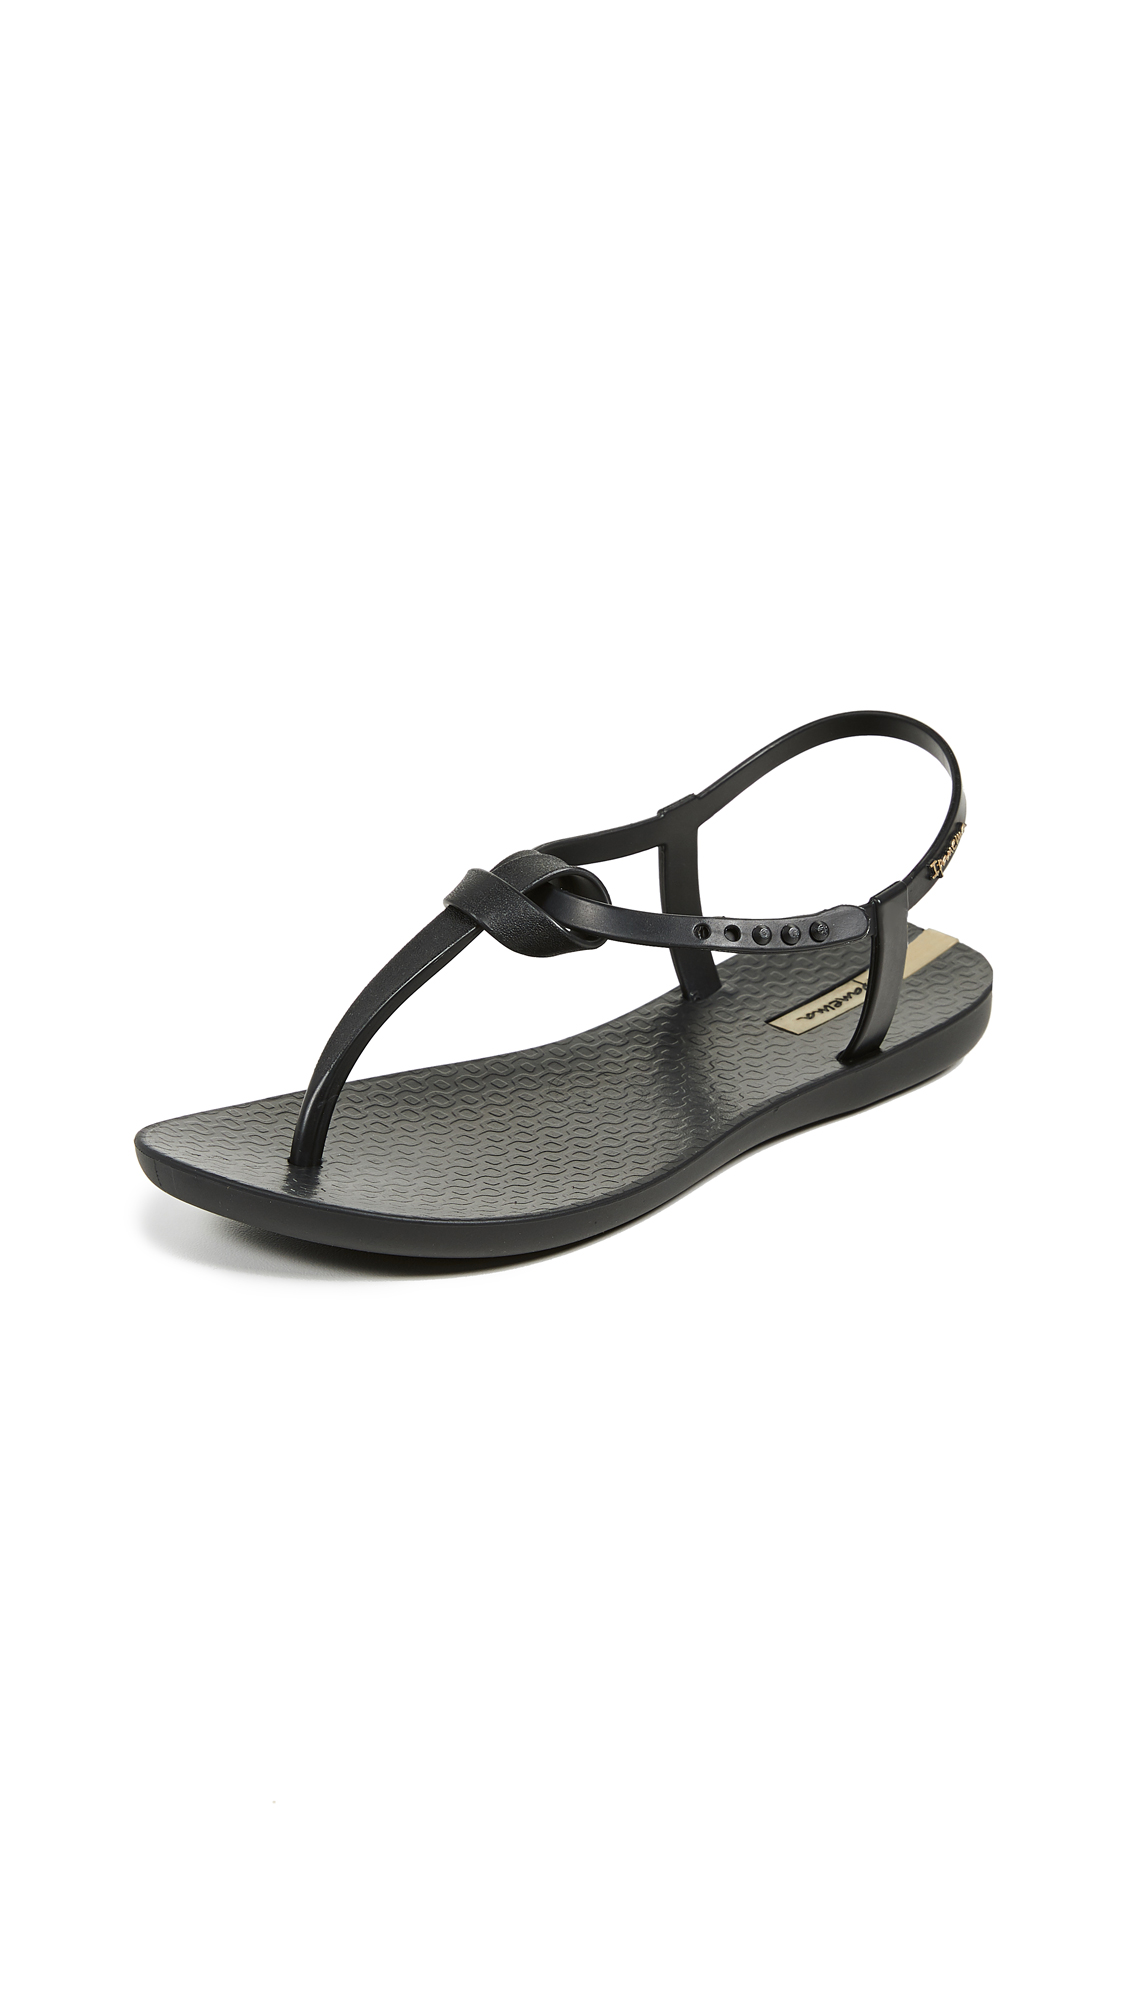 d850cbfcac1a16 Ipanema Women S Ellie Thong Sandals In Black Black